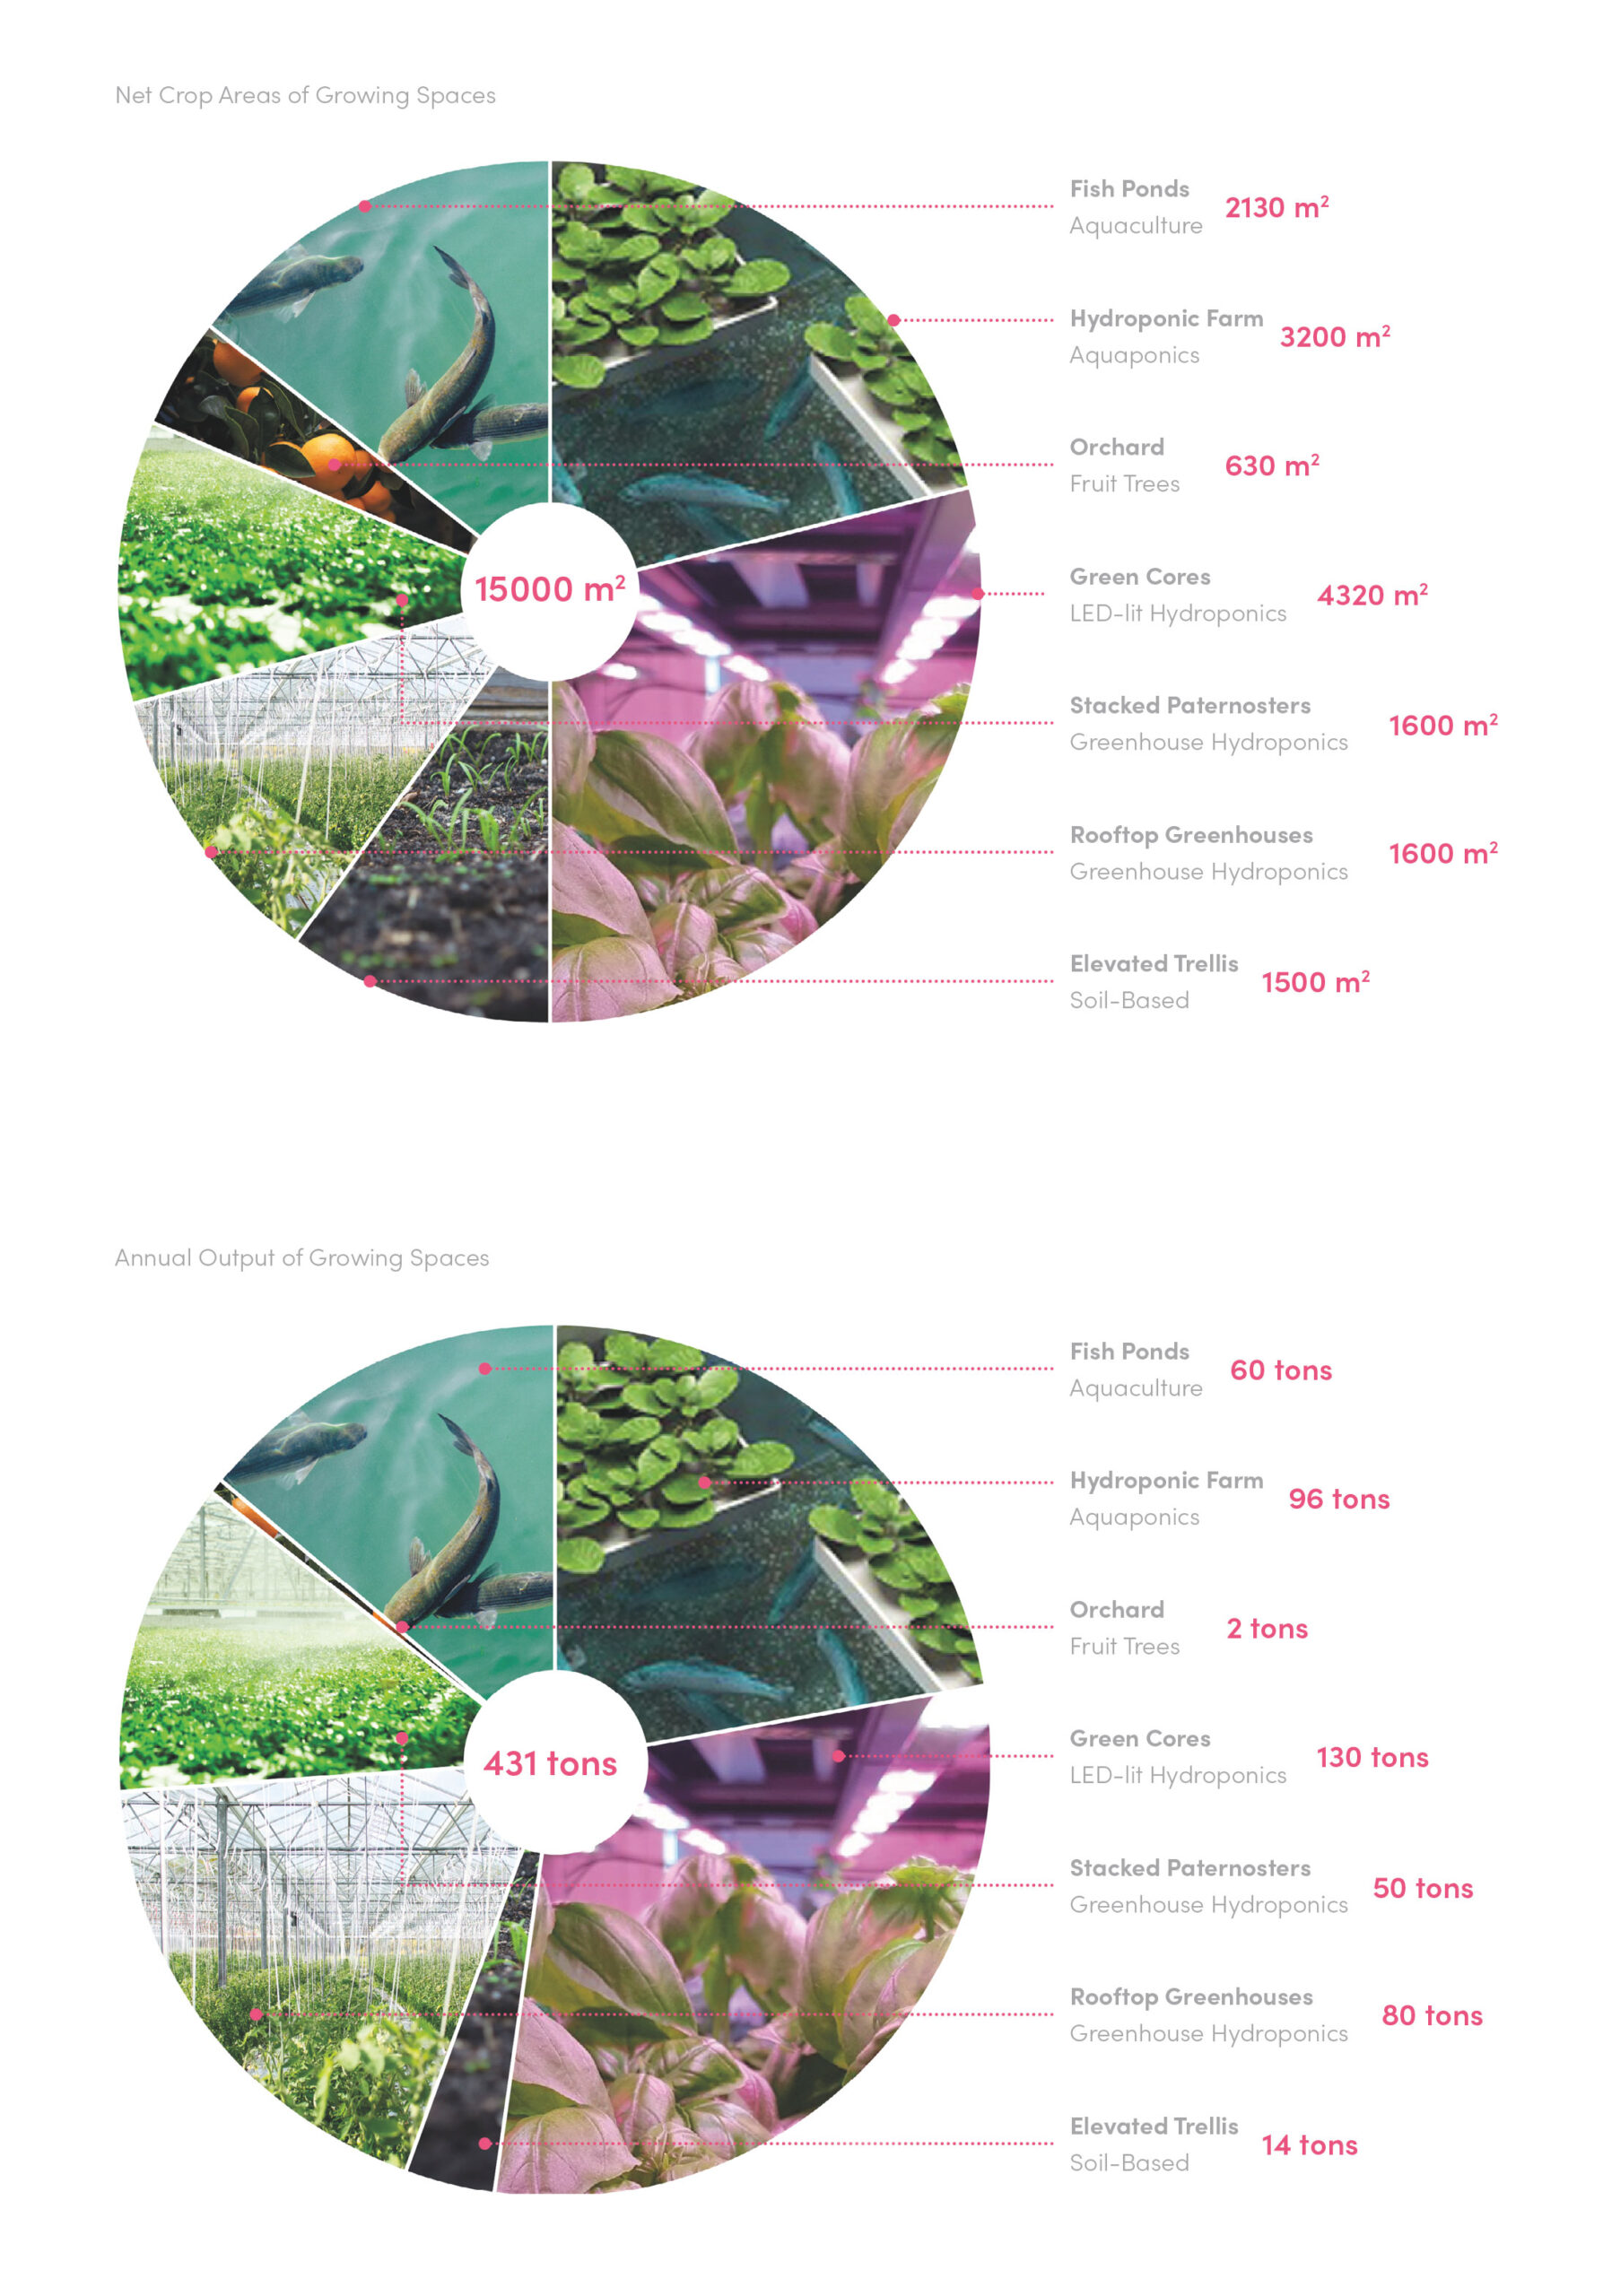 The combined crop area of the scheme amounts to 15,000sqm, producing 430 tons of fresh produce every year.